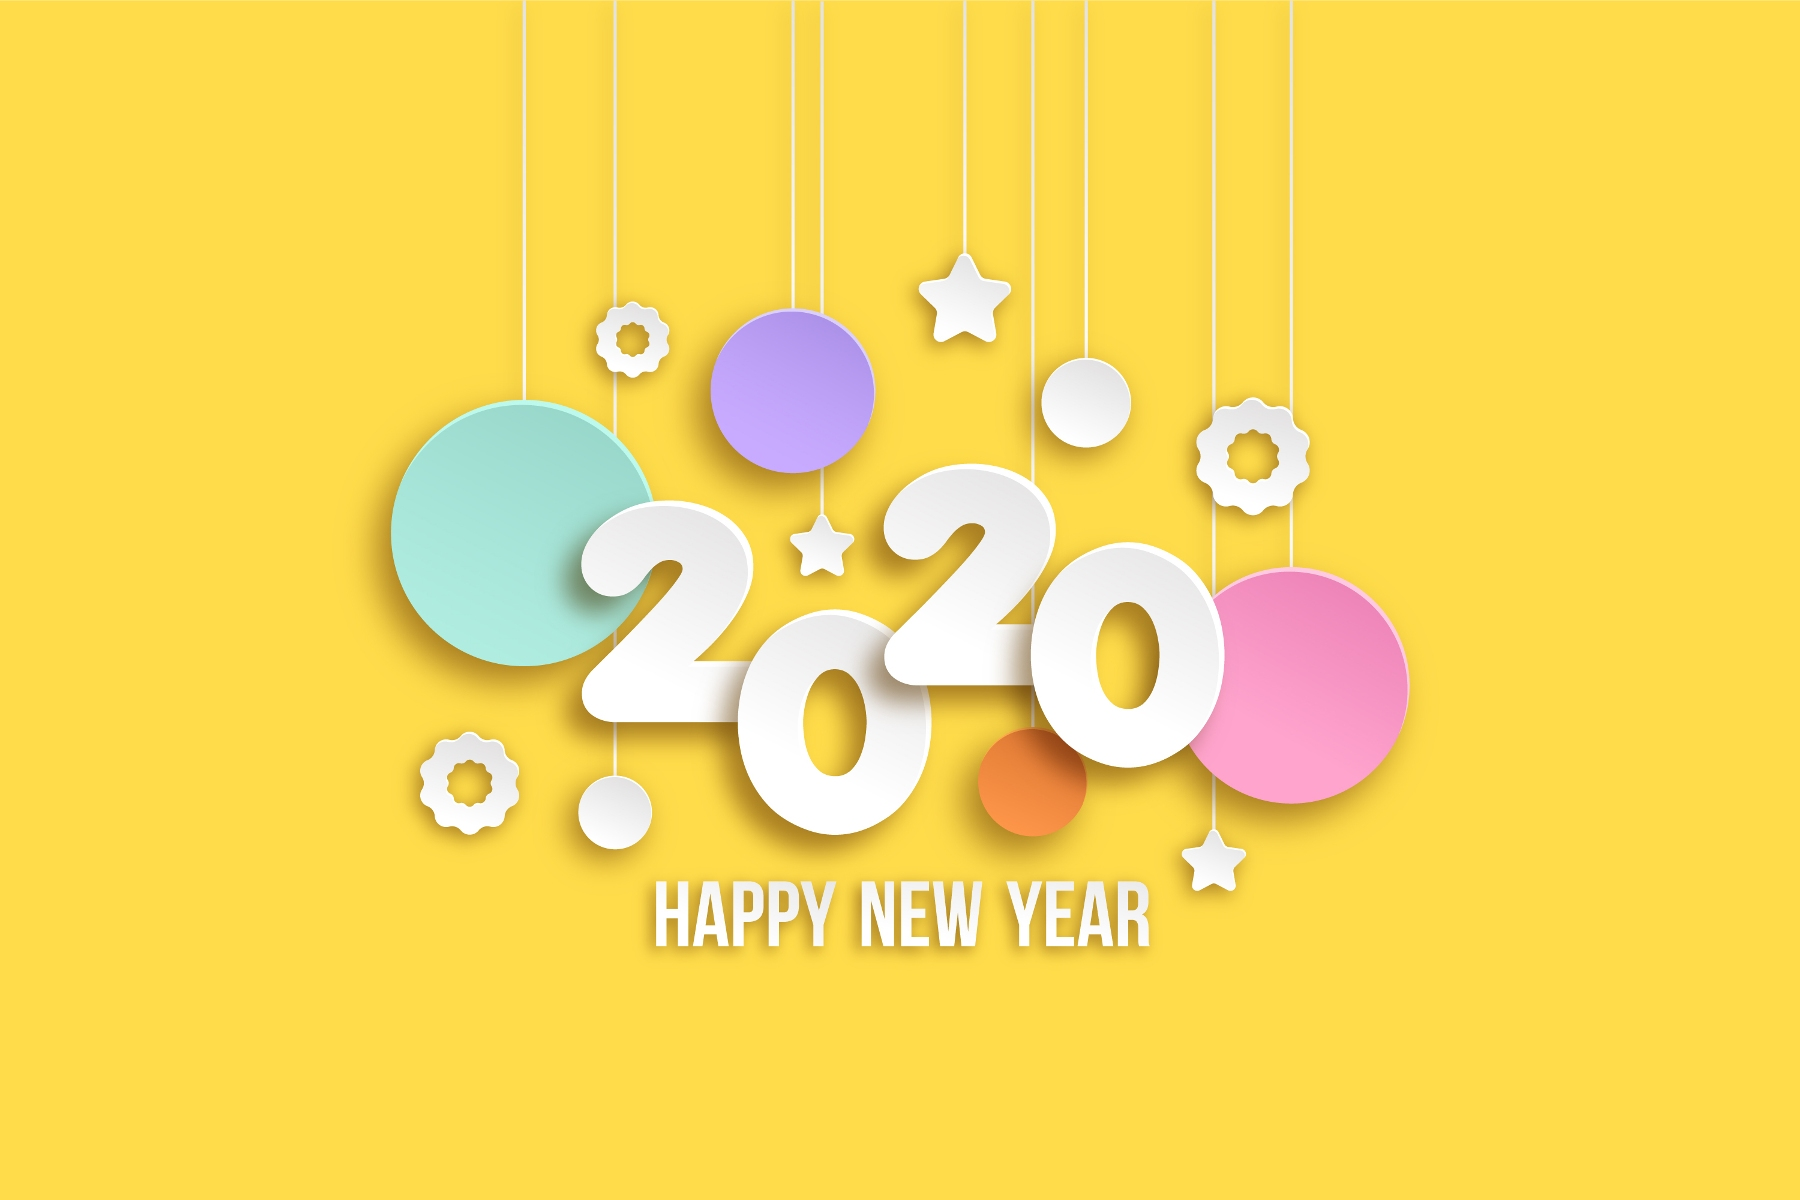 31 New Year Captions for Instagram 2021!